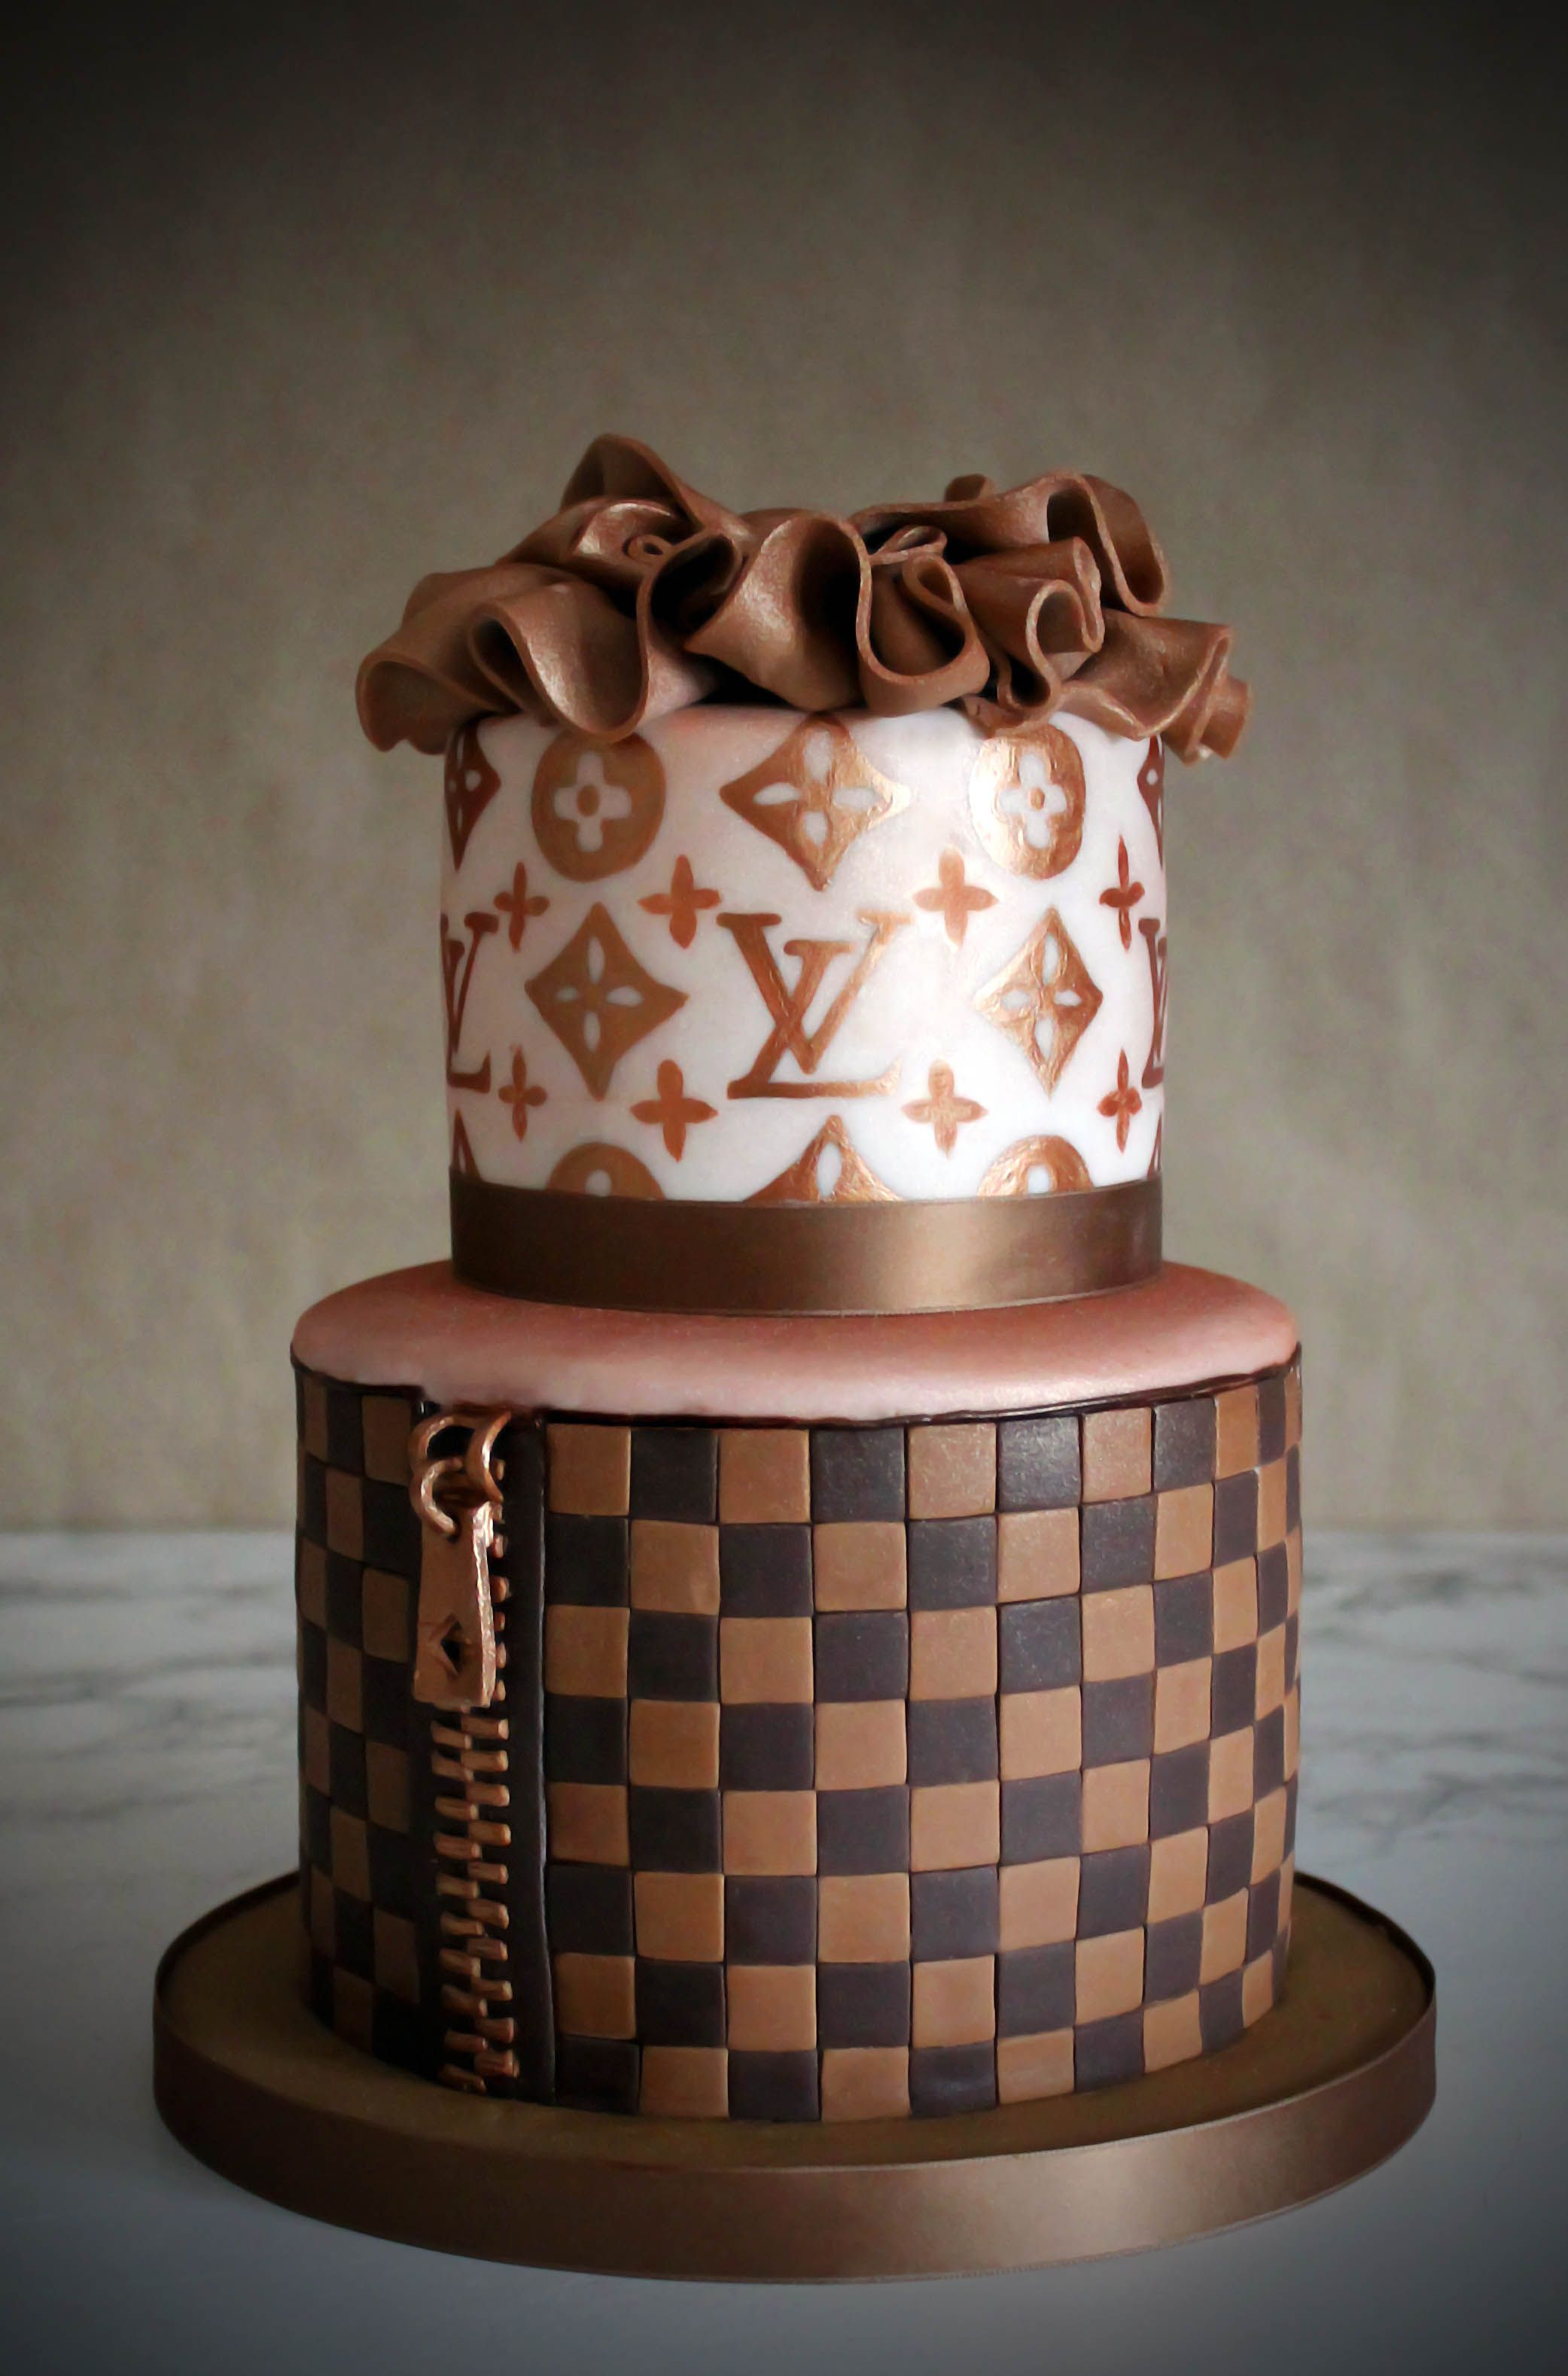 louis vuitton cake lv cakes pinterest torten kuchen und. Black Bedroom Furniture Sets. Home Design Ideas